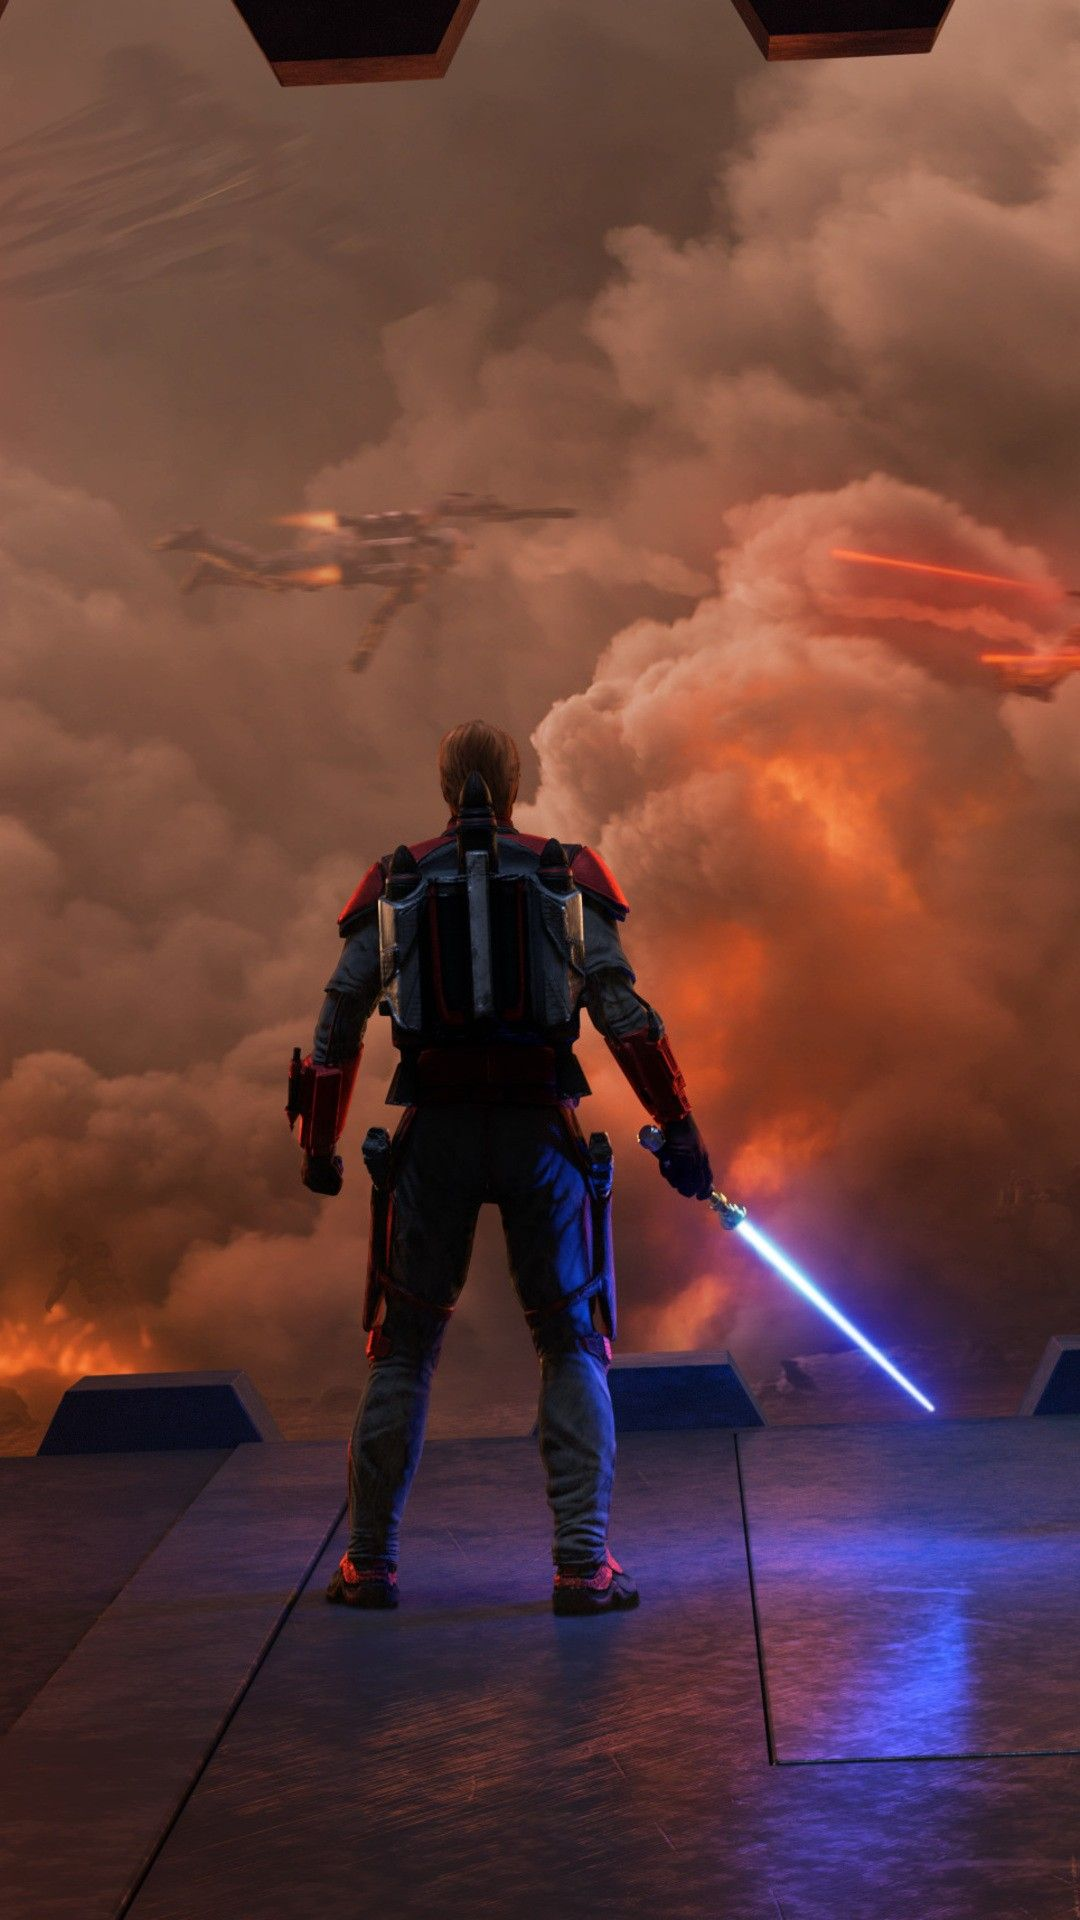 Star Wars Siege Of Mandalore Cs Wallpaper [1080x1920]